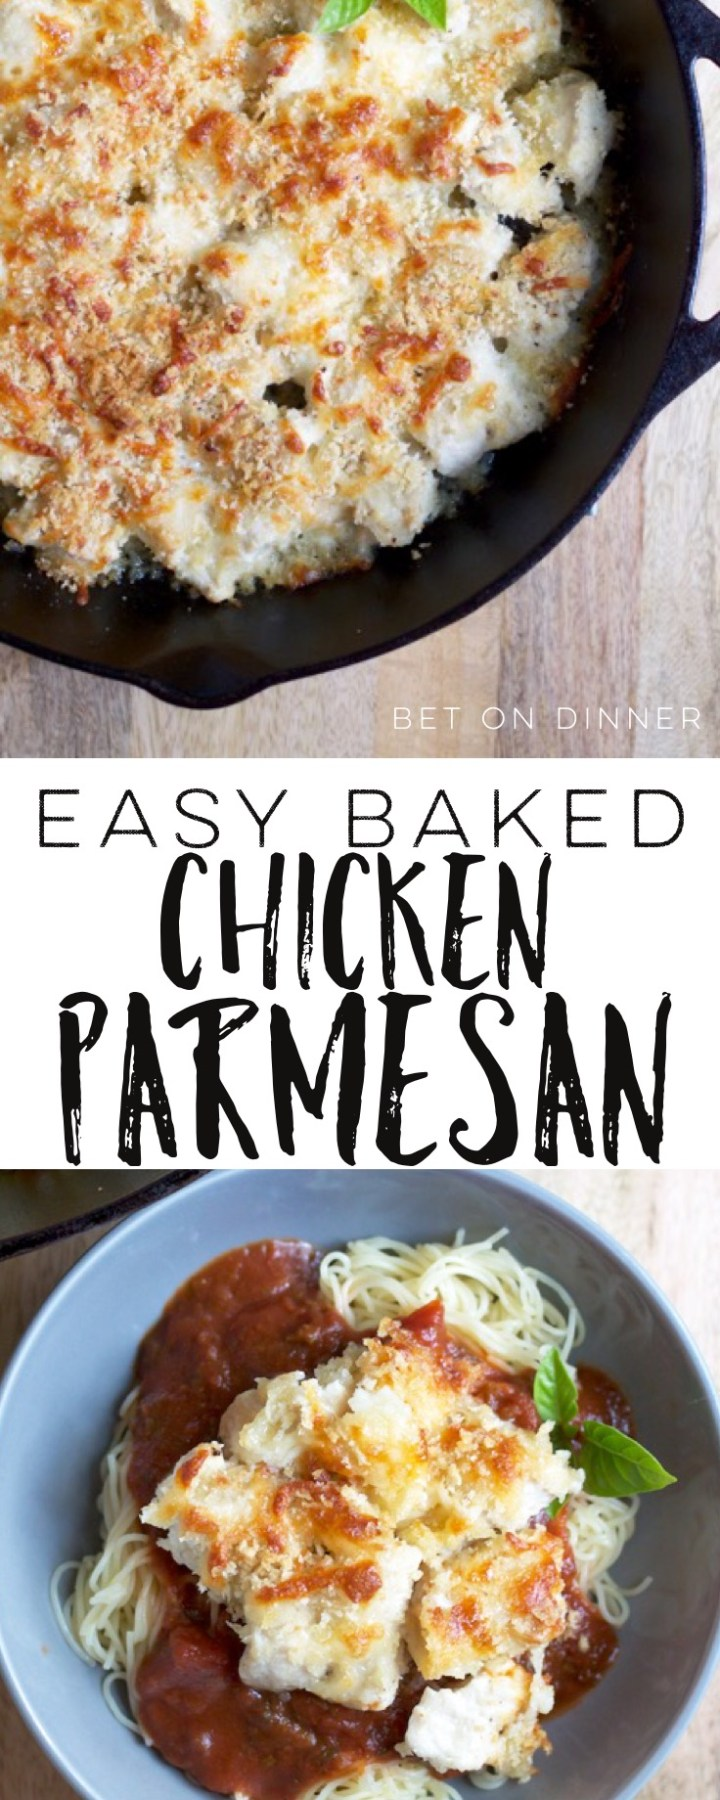 Easy baked chicken parmesan features seared bite-sized pieces of chicken covered with a bread crumbs and cheese topping! So crispy...so cheesy...so easy!